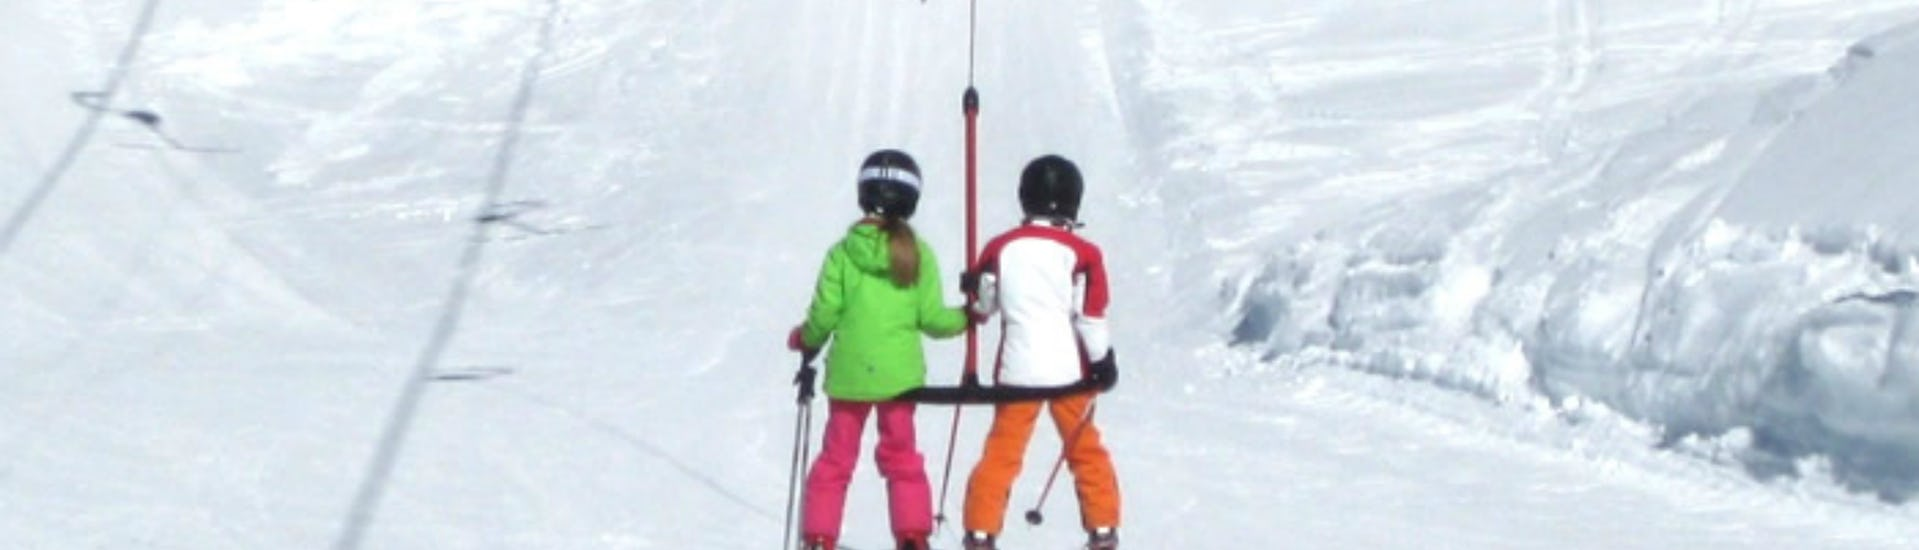 "Skikurs ""Winter Camp"" (6-11 Jahre) - Alle Levels"